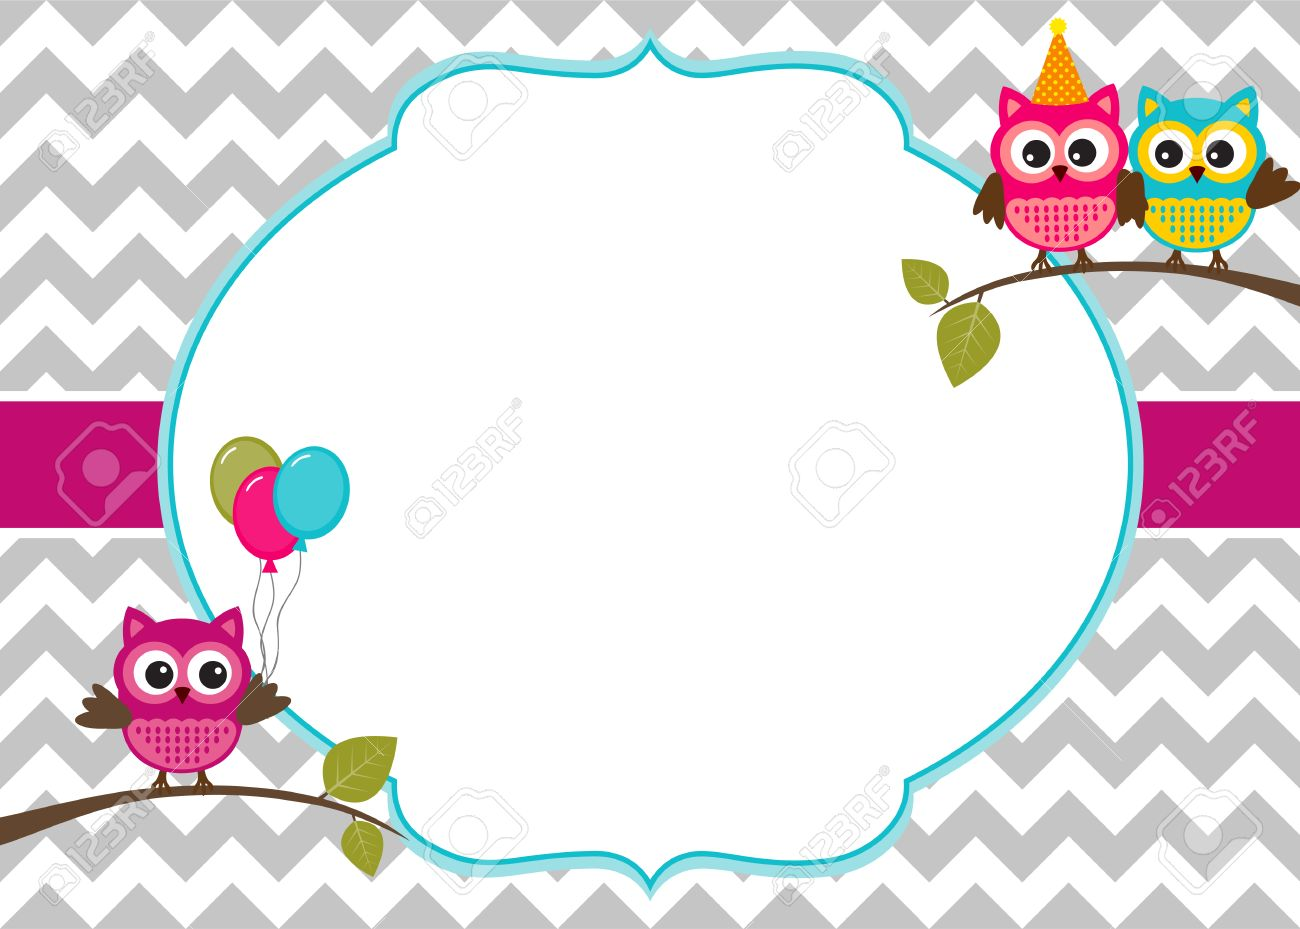 Owl Party Invitation Card Template With White Frame For Your ...